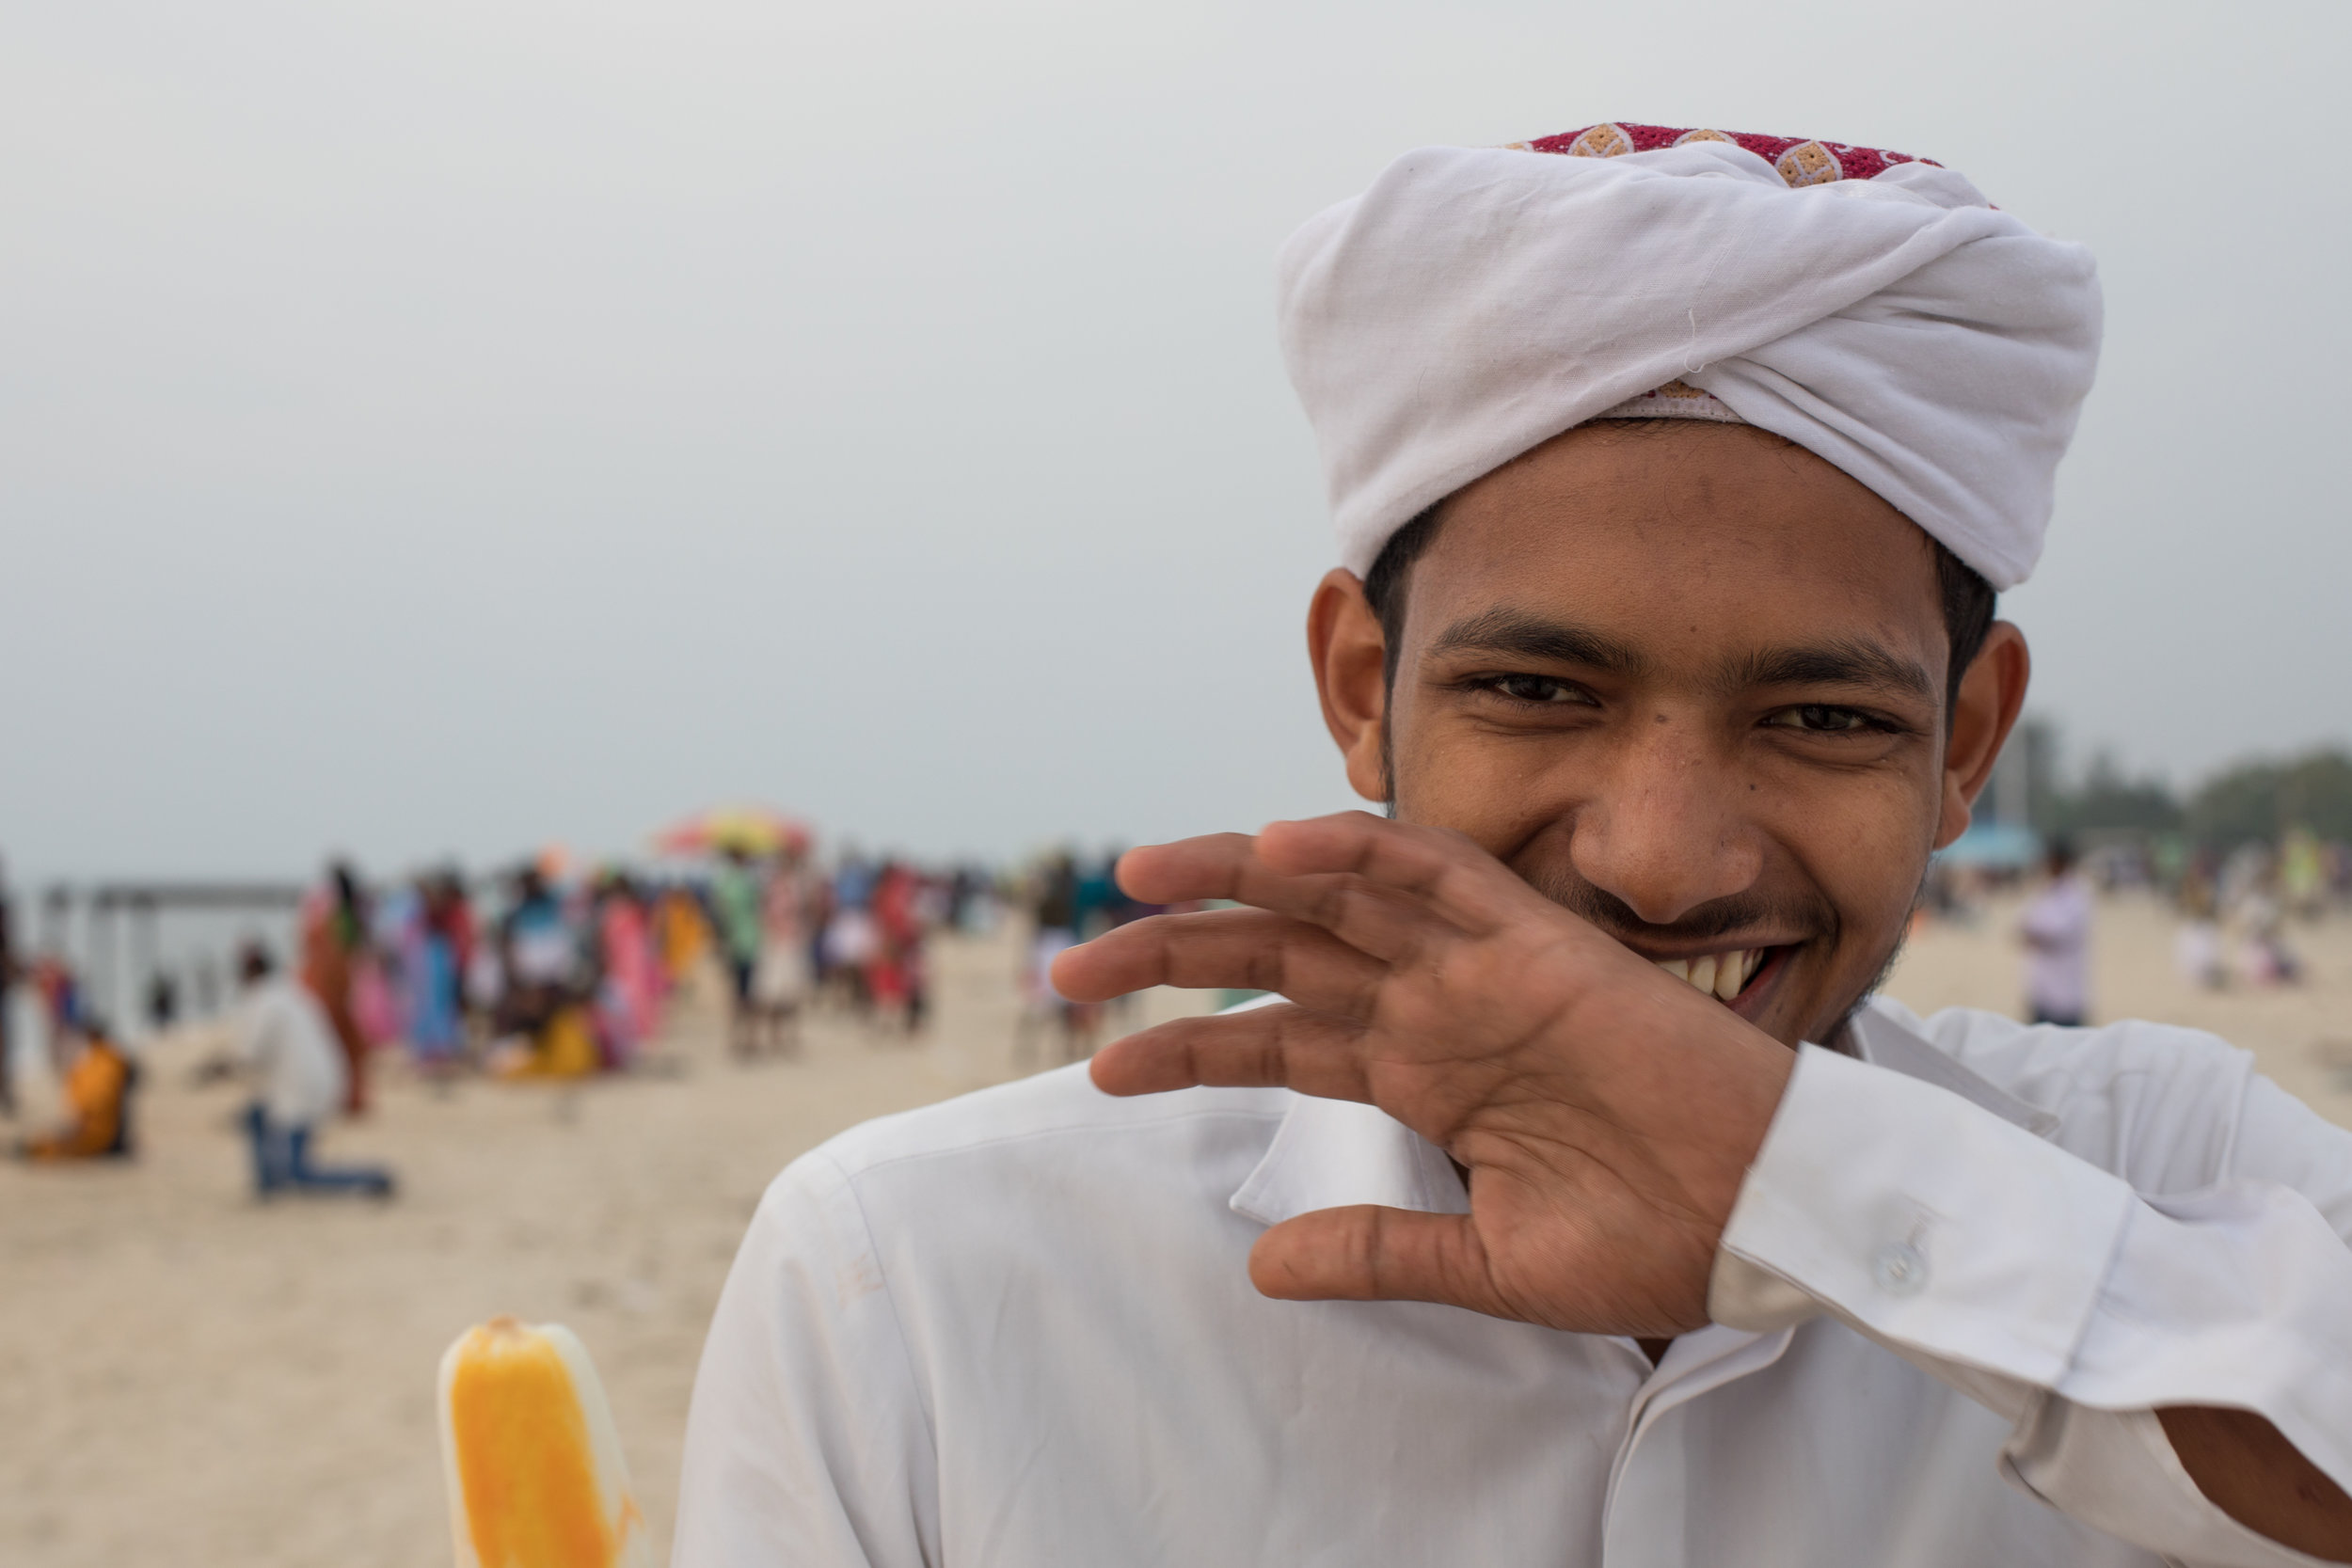 Portrait of a happy Muslim boy on the beach in Alleppy.